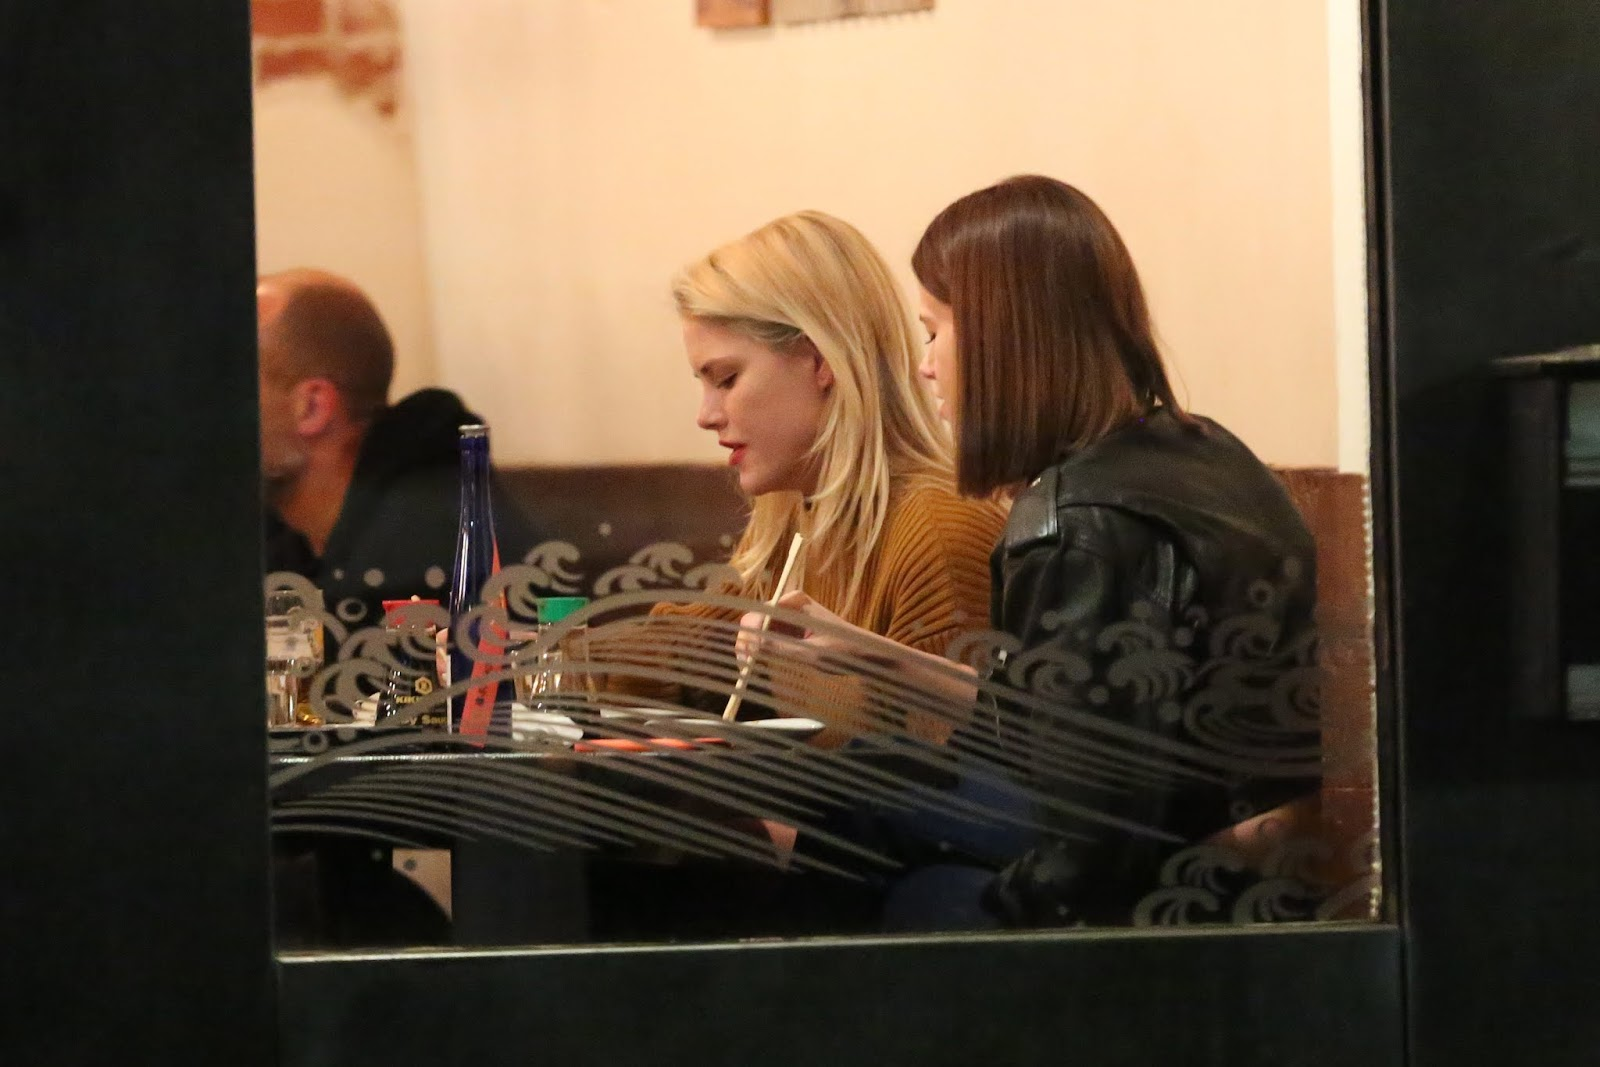 Hailey Clauson - romantic dinner date at IZAKA-YA by KATSU-YA in West Hollywood - 02/09/2019